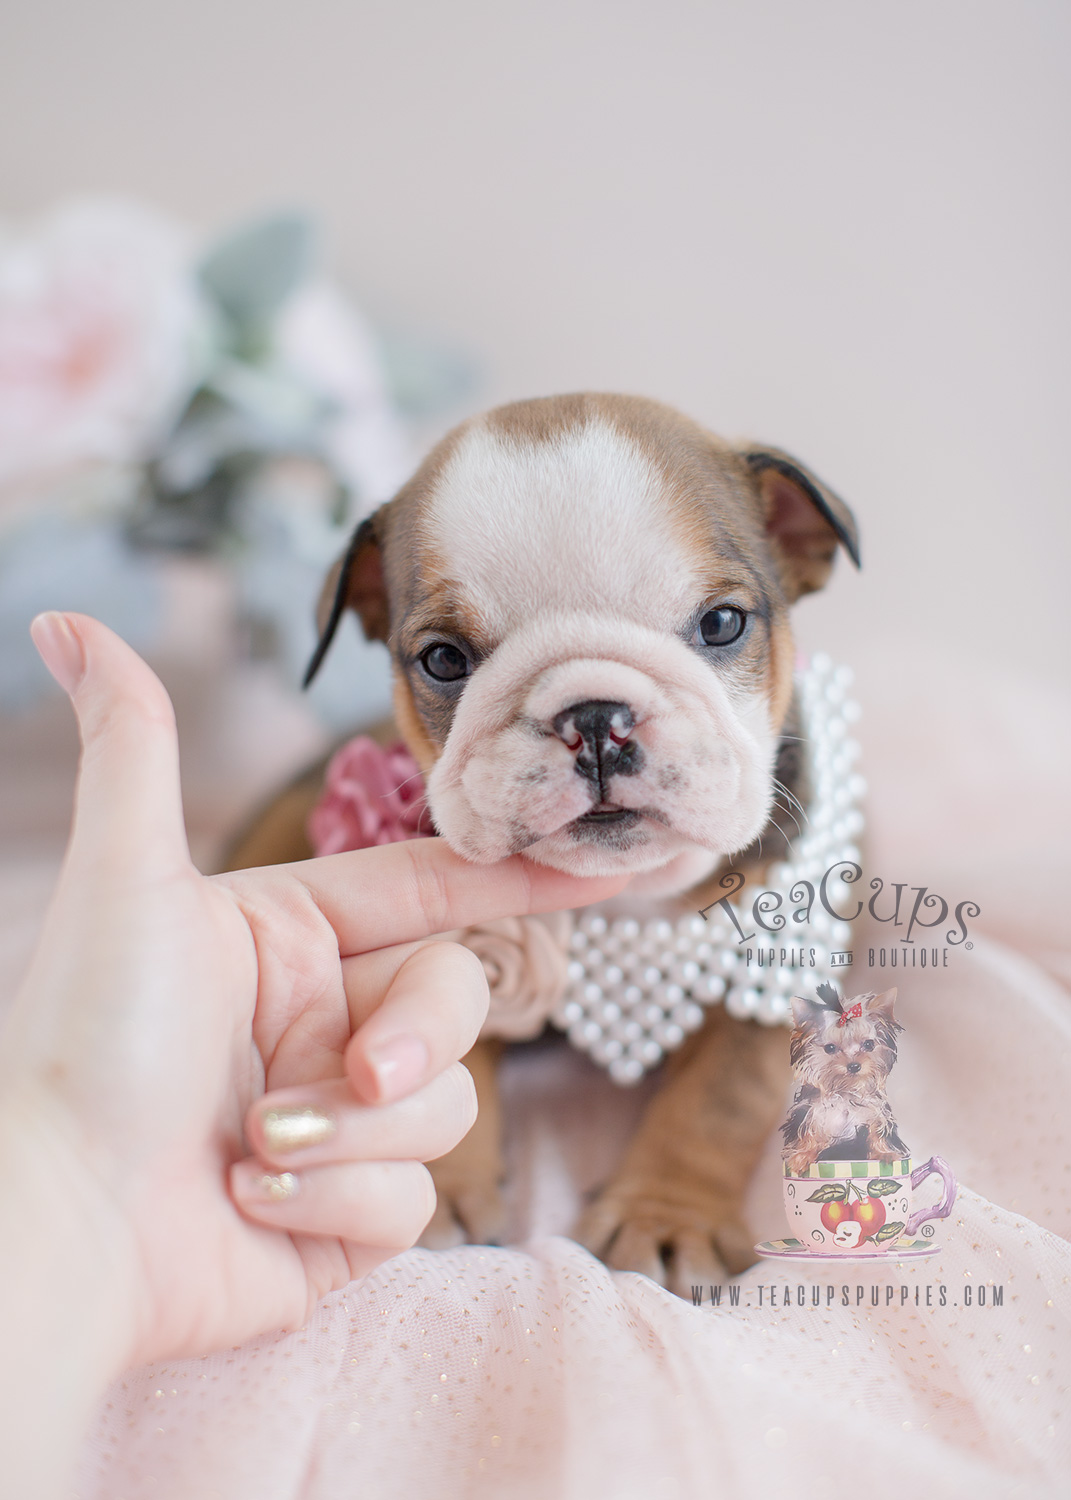 English Bulldog Puppy For Sale at TeaCup Puppies